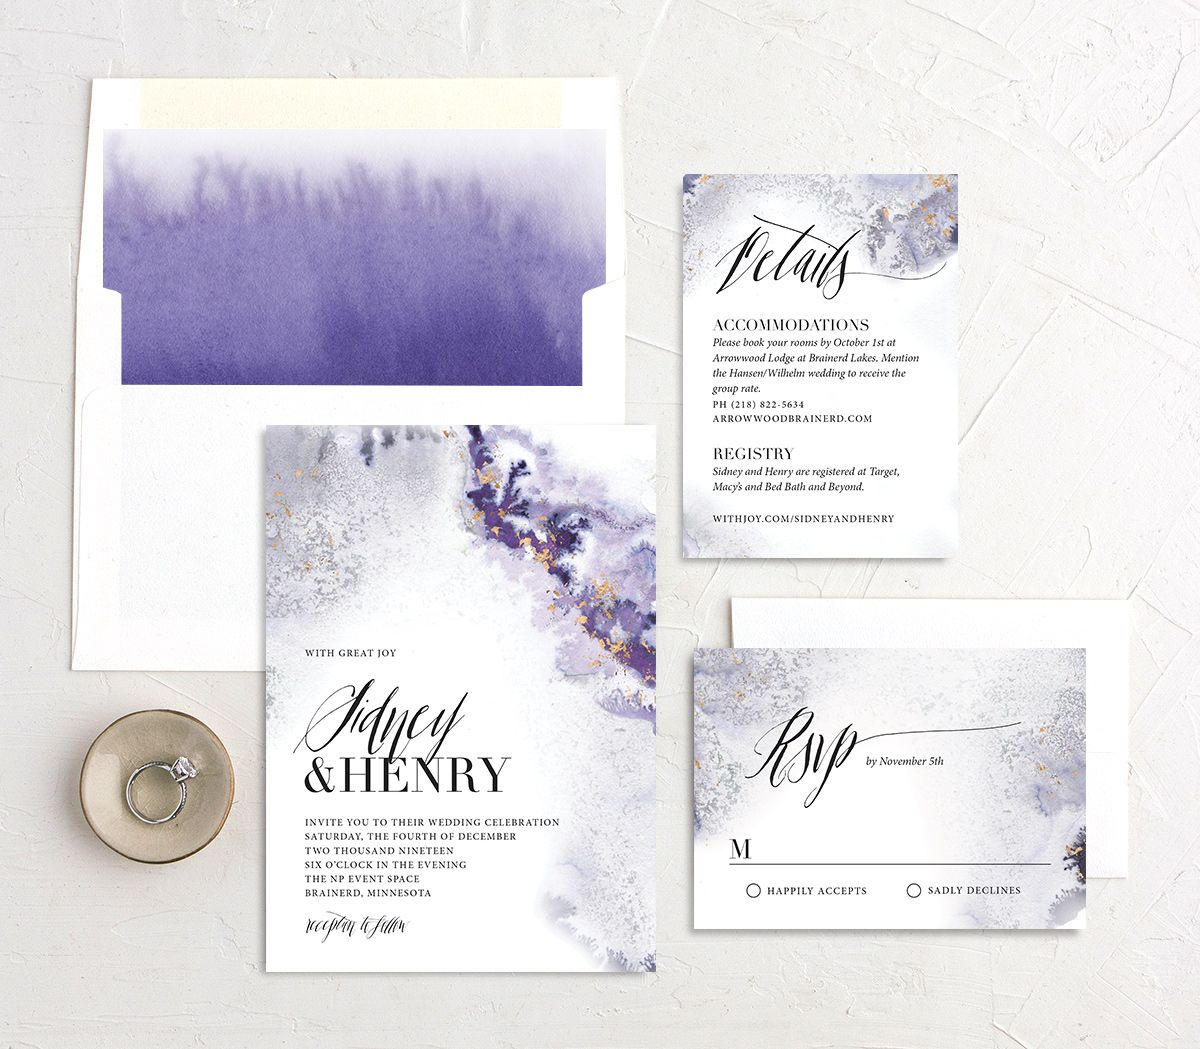 painted ethereal wedding invitation stationery suite in purple